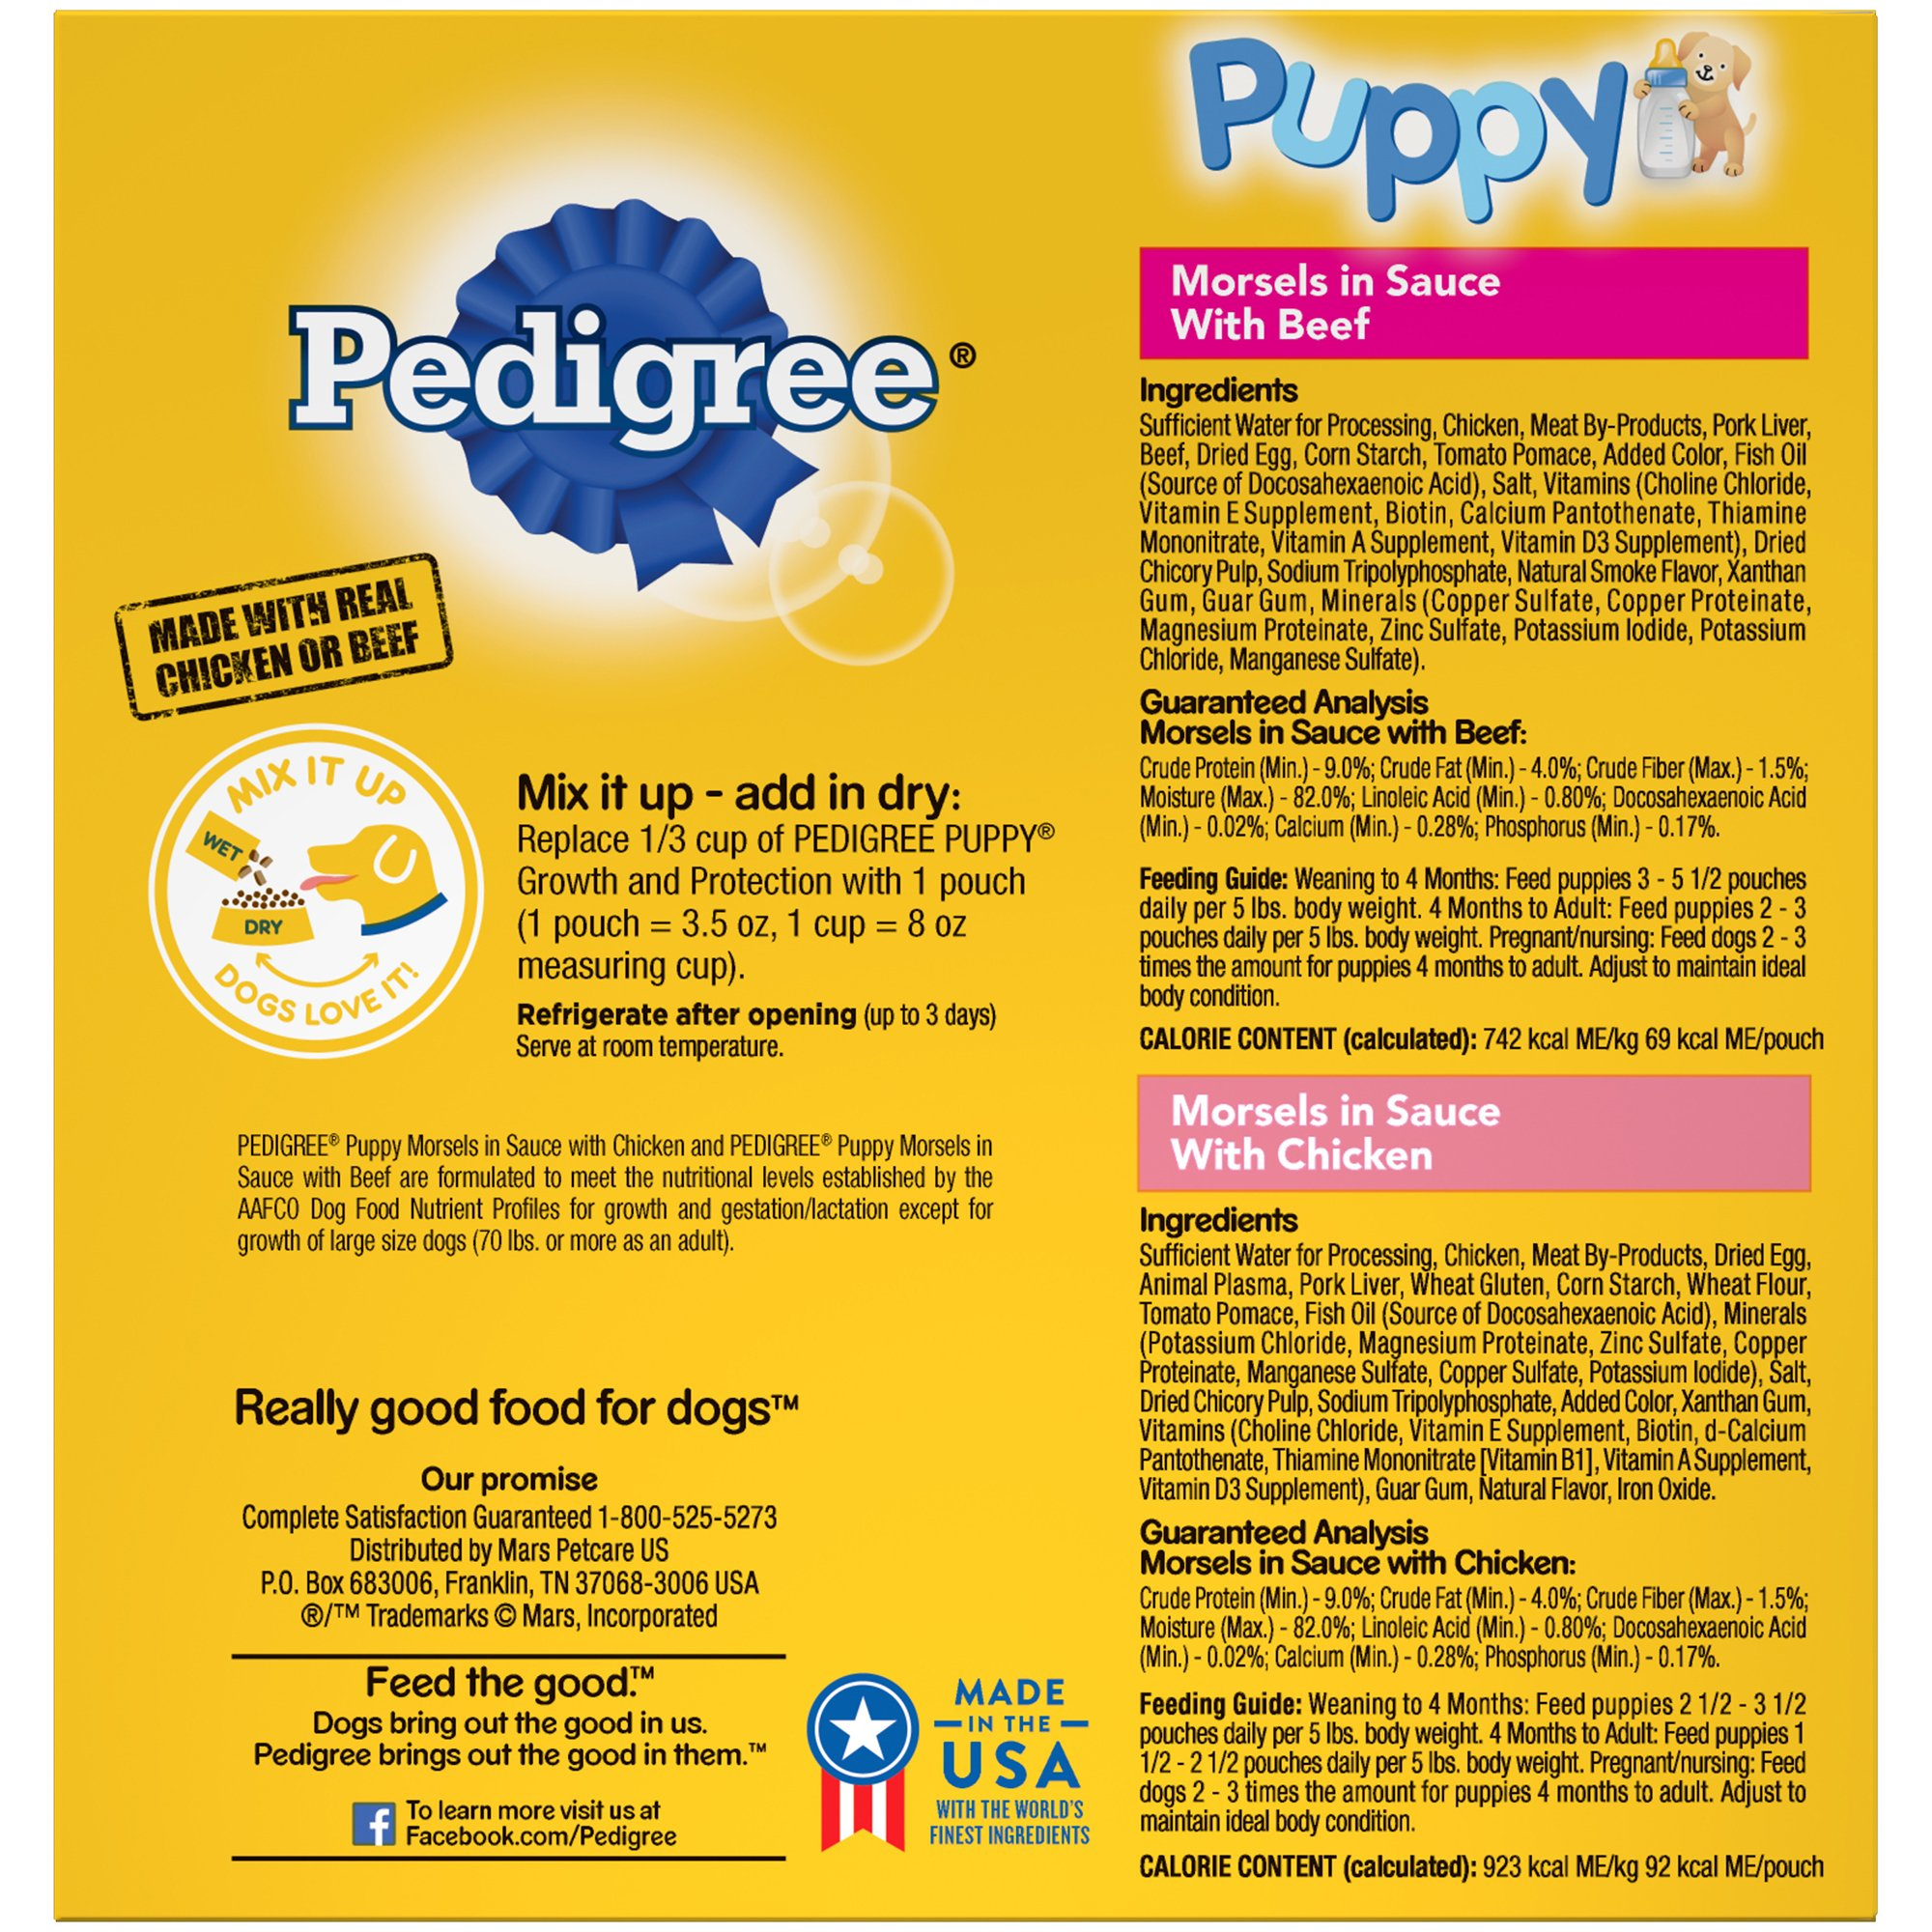 Pedigree CHOICE CUTS Puppy Morsels in Sauce Wet Dog Food Variety Pack Chicken Beef, (16) 3.5 oz. Pouches by Pedigree (Image #2)